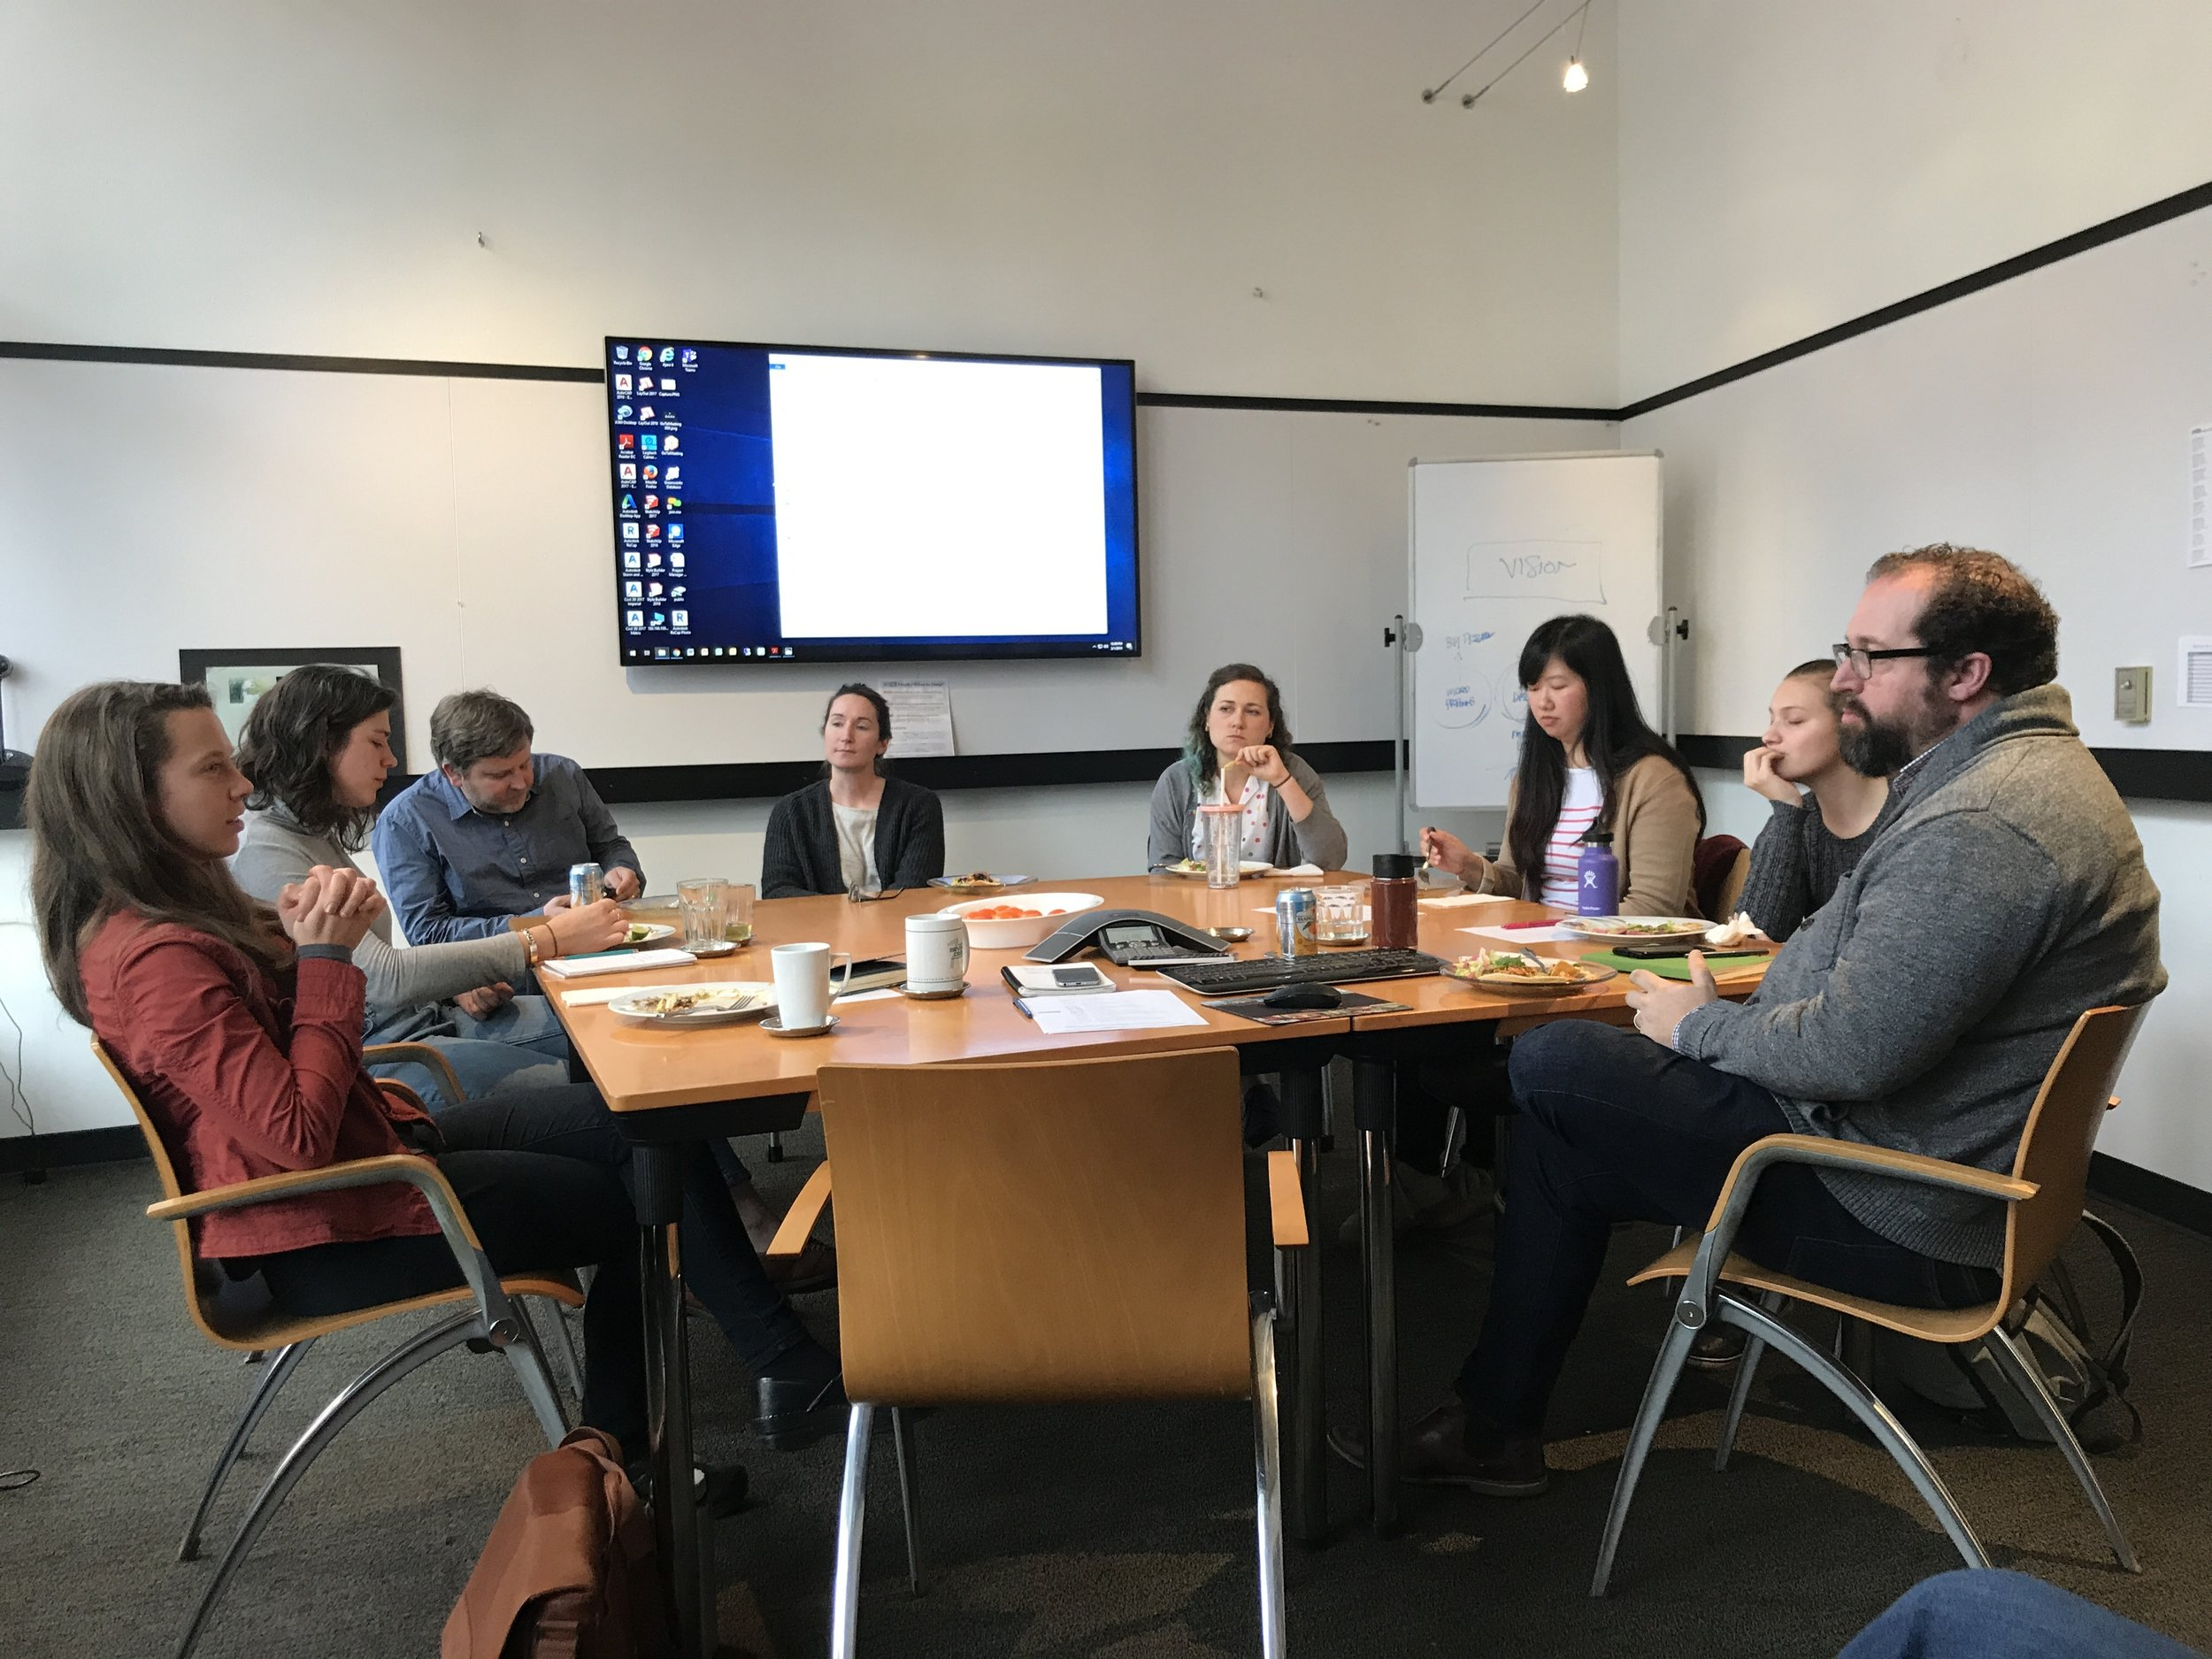 """Lunch and an animated discussion during the """"GreenWorks Tackles Wicked Problems"""" session."""